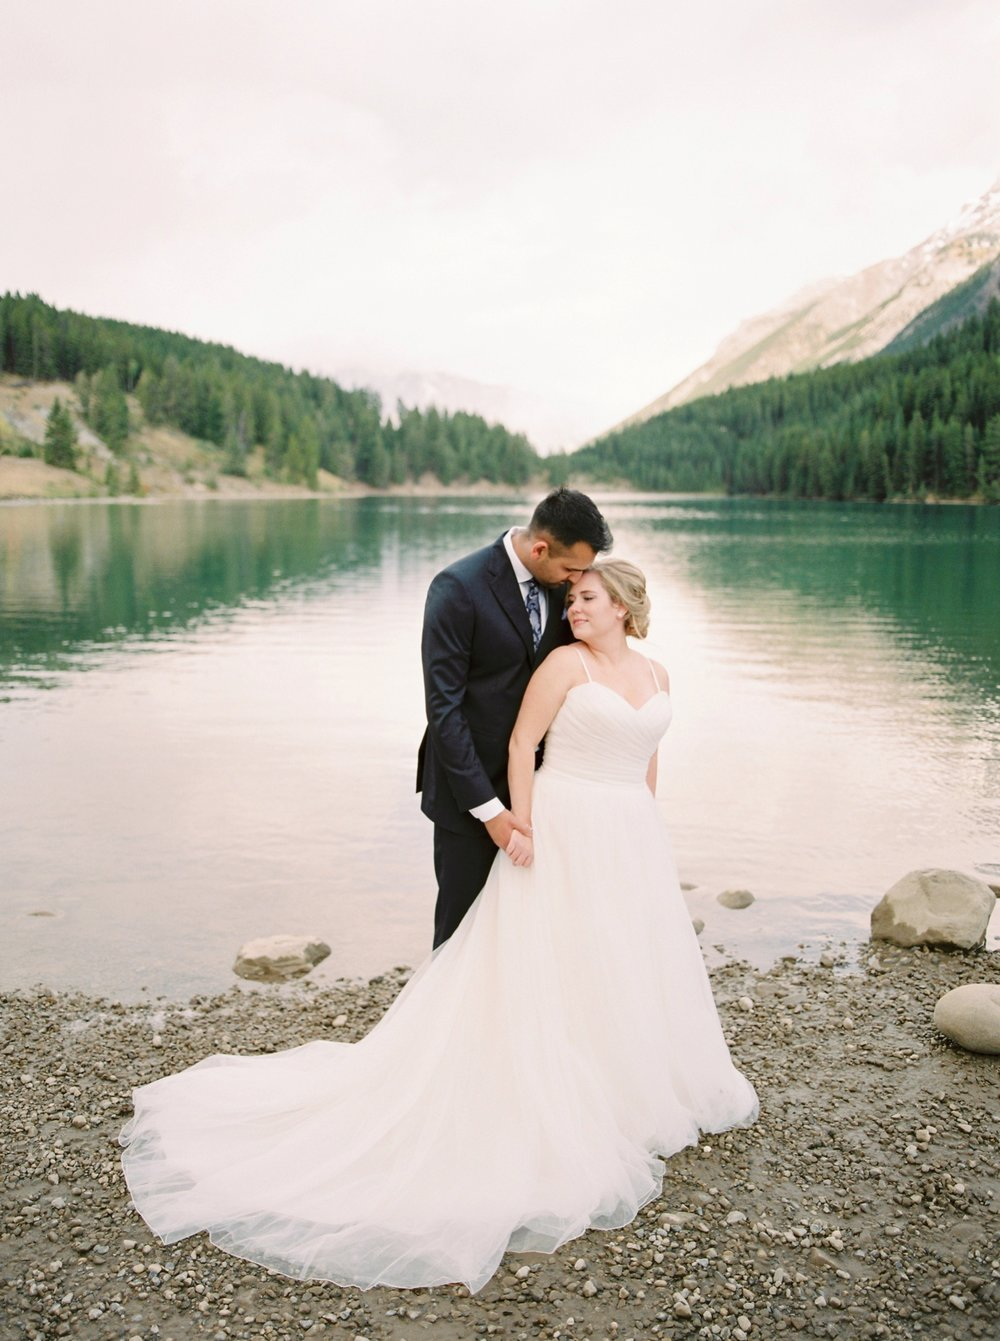 Calgary wedding photographers | banff wedding photographers | fine art film | Justine Milton Photography | wedding vows | elopement photographers | bride and groom portraits | moraine lake